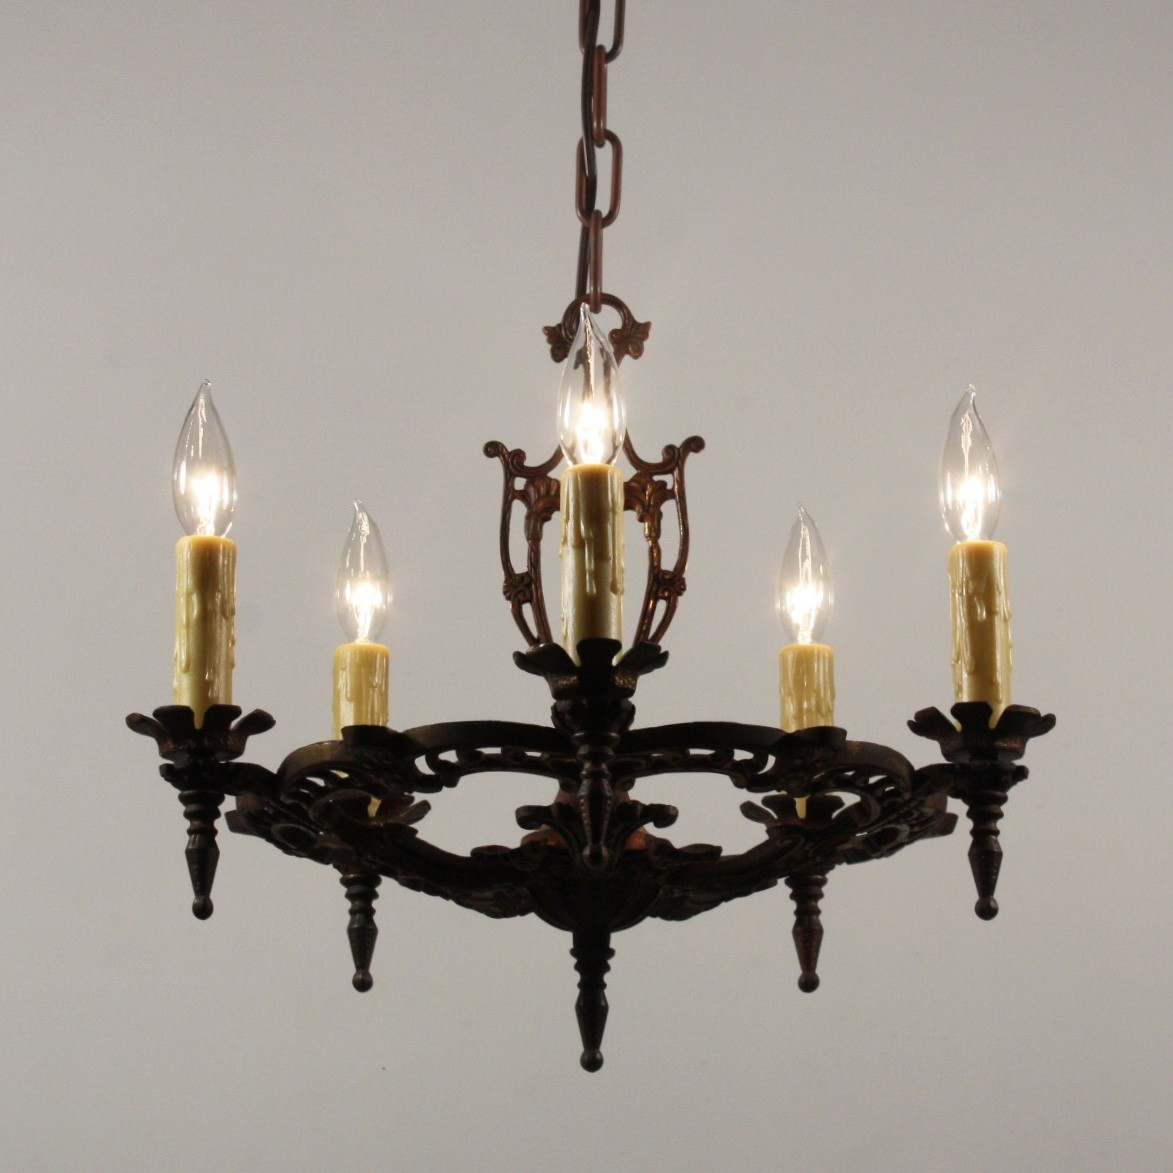 Antique Chandelier In Cast Iron Antique Lighting Preservation Throughout Cast Iron Antique Chandelier (Image 5 of 15)